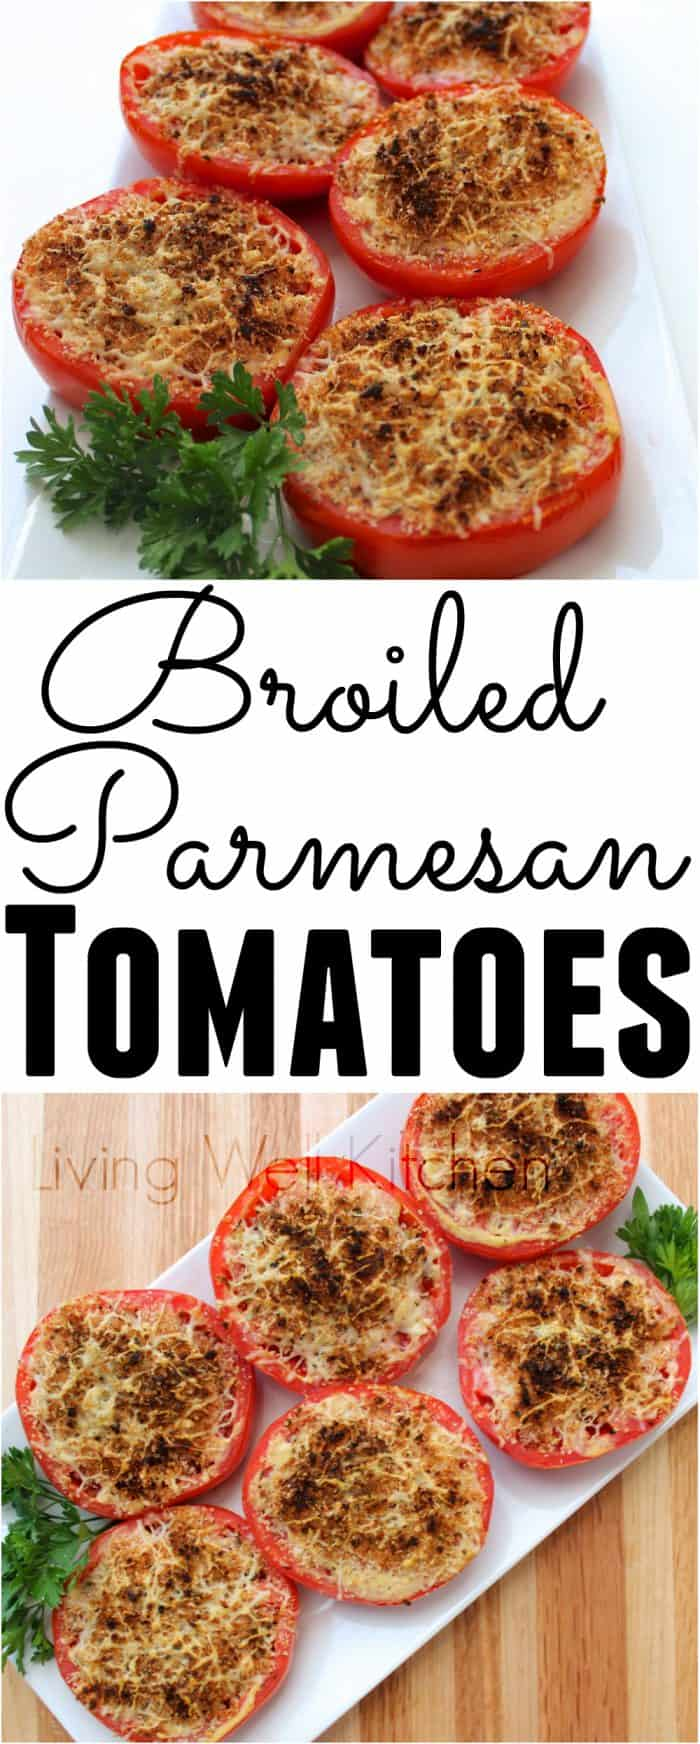 Broiled Parmesan Tomatoes are a super simple summer side dish that only needs five ingredients and takes less than 15 minutes start to finish